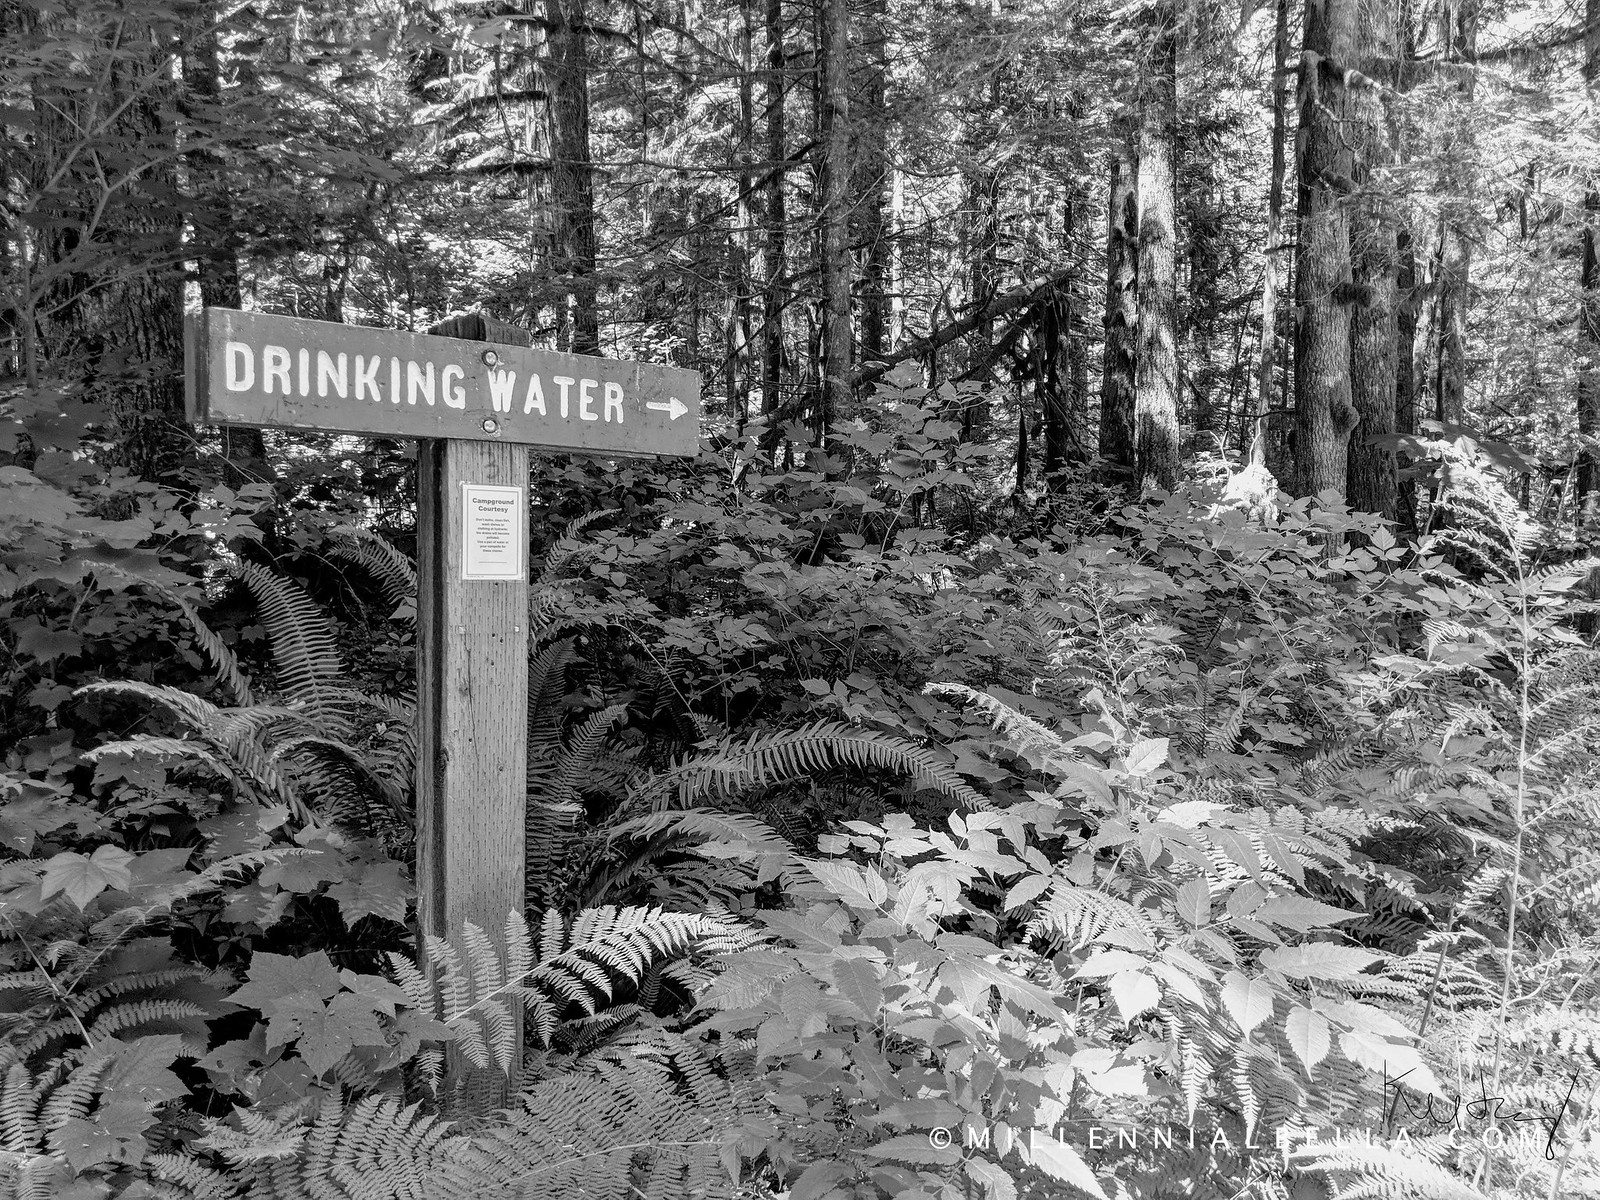 Tinkham Campground Drinking Water Fountain